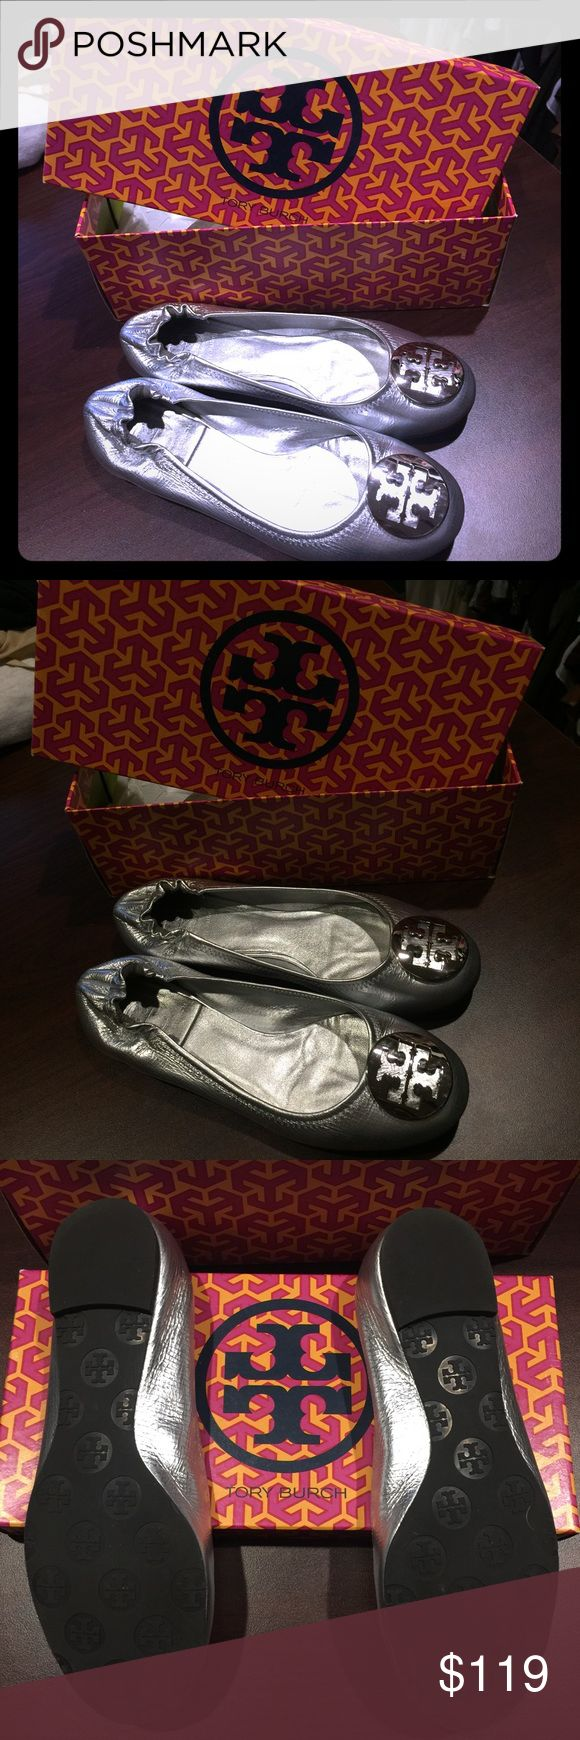 NWT | Tory Burch | Silver Ballet Flat | Size 7.5 NWT | Tory Burch | Silver Ballet Flat | Size 7.5 Tory Burch Shoes Flats & Loafers